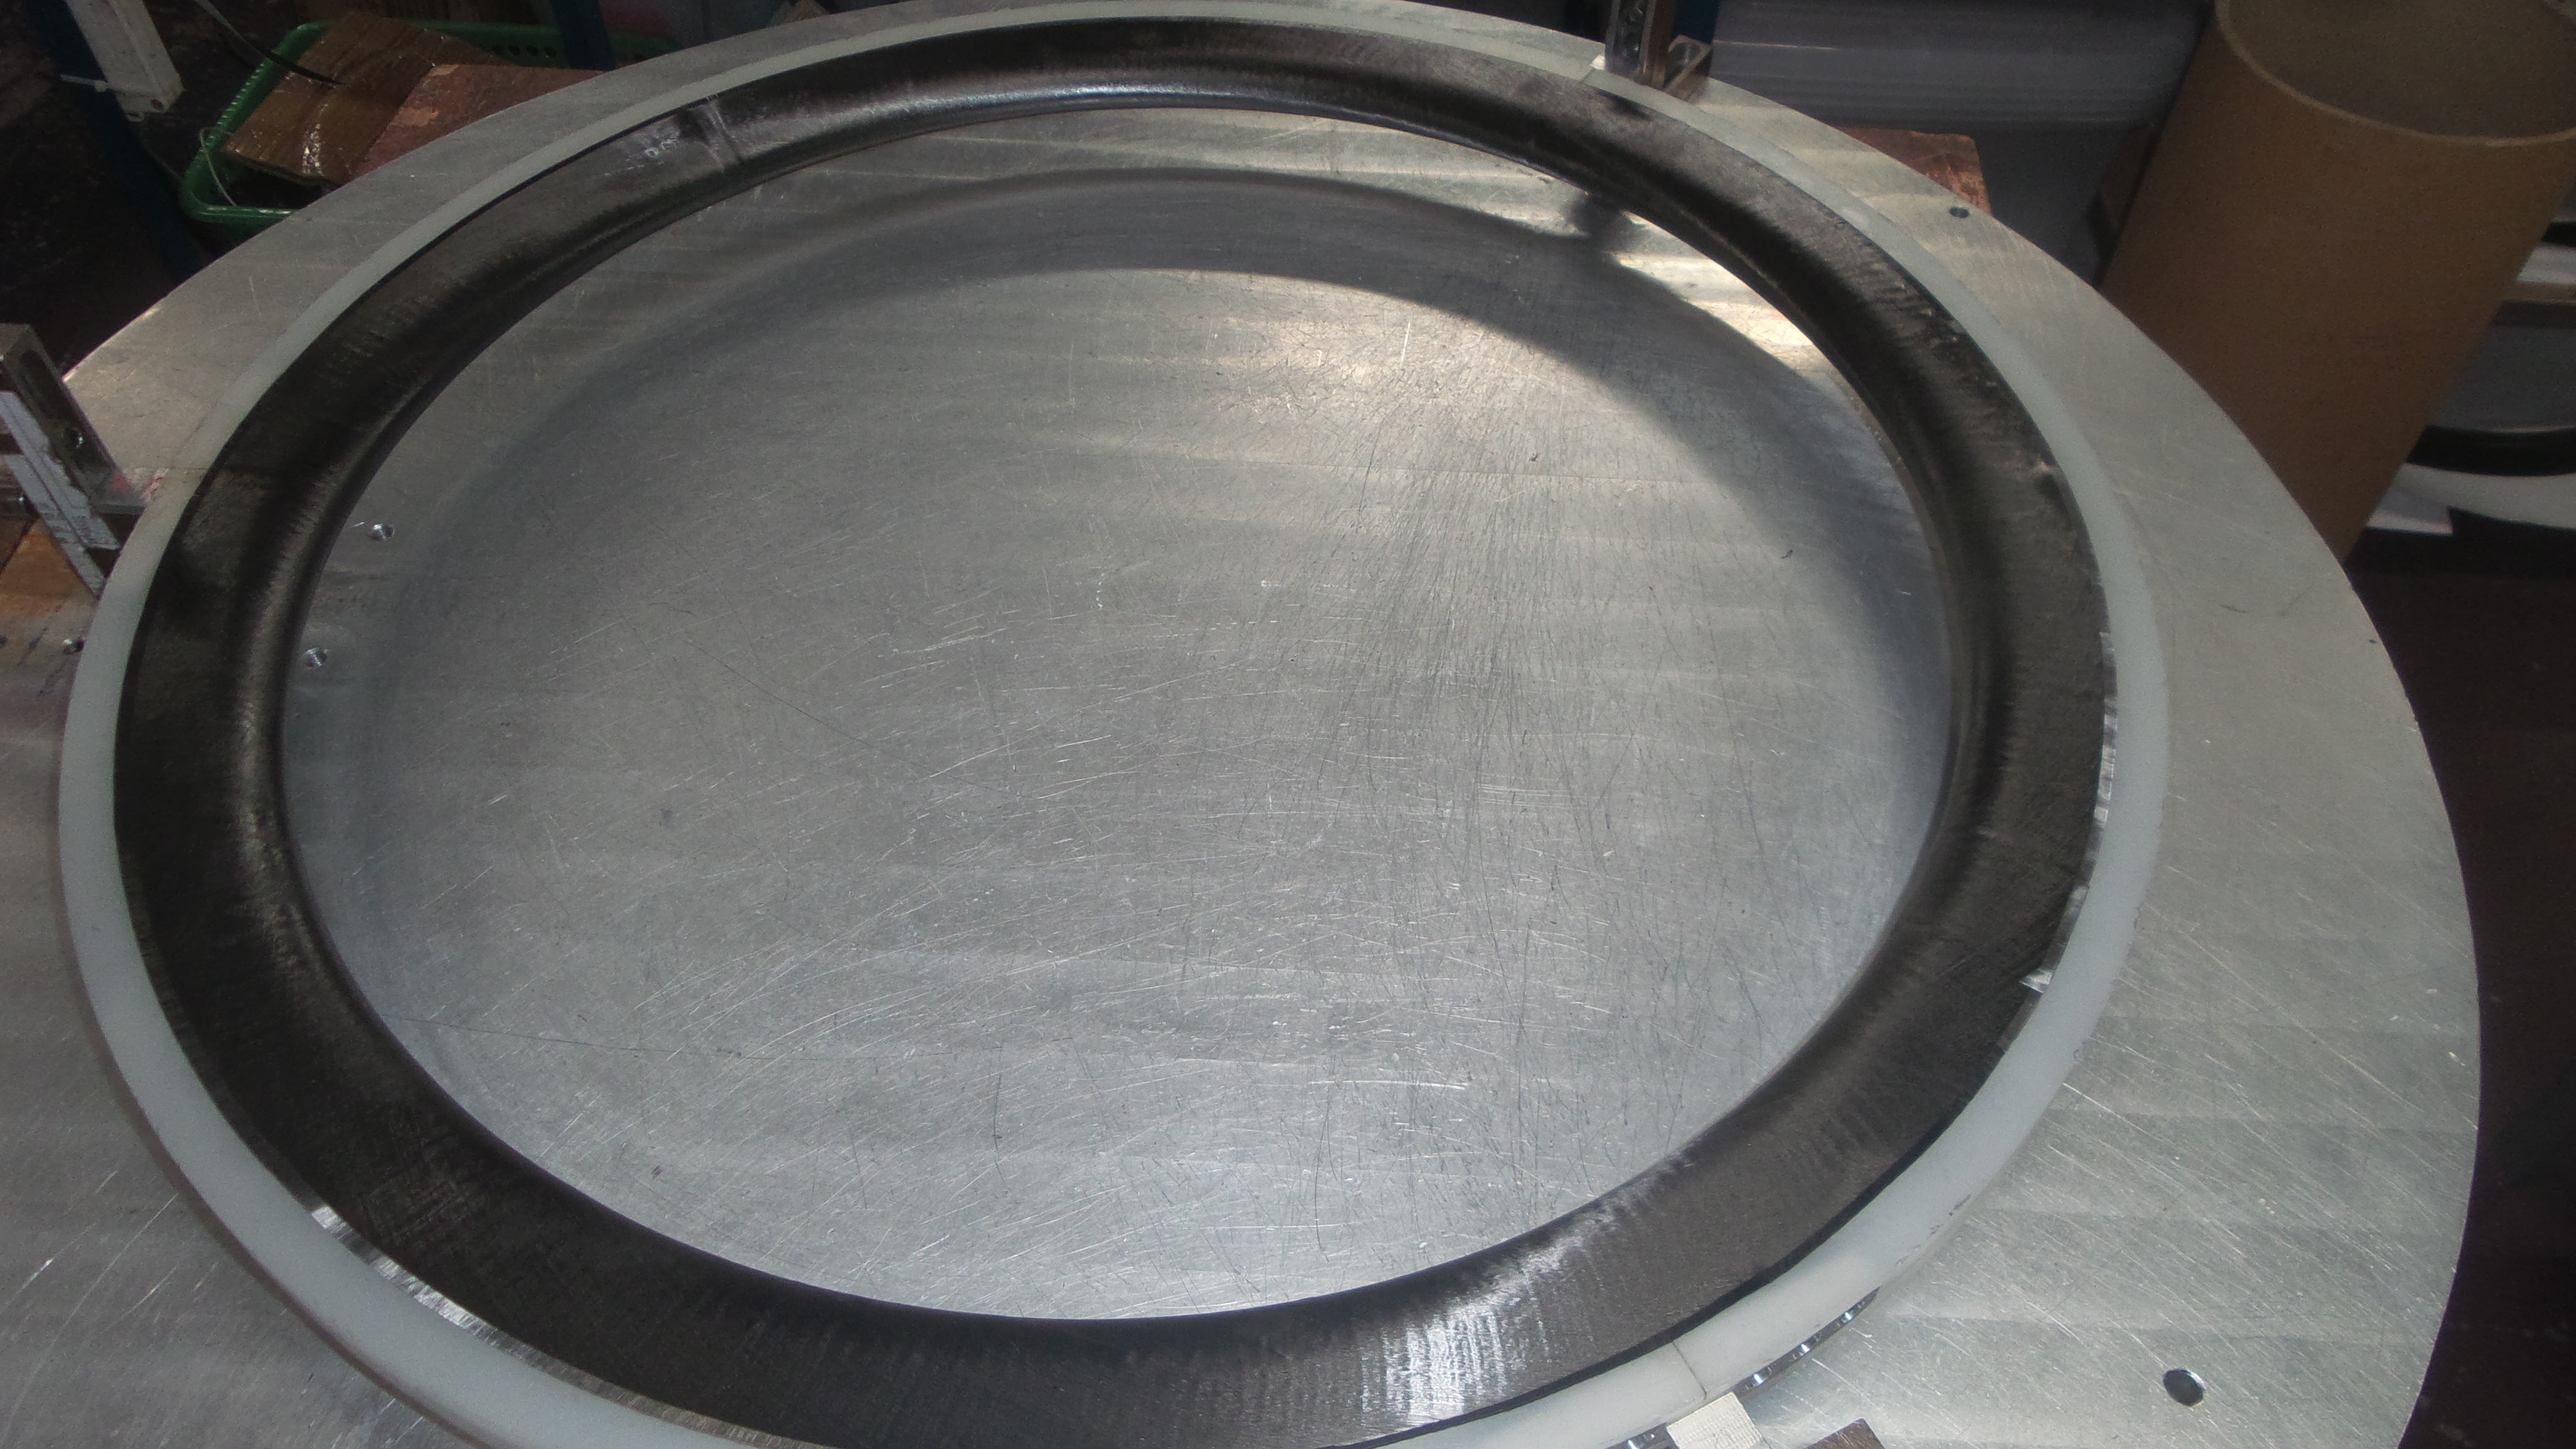 The machine used by venn cycling to produce CTL wheels